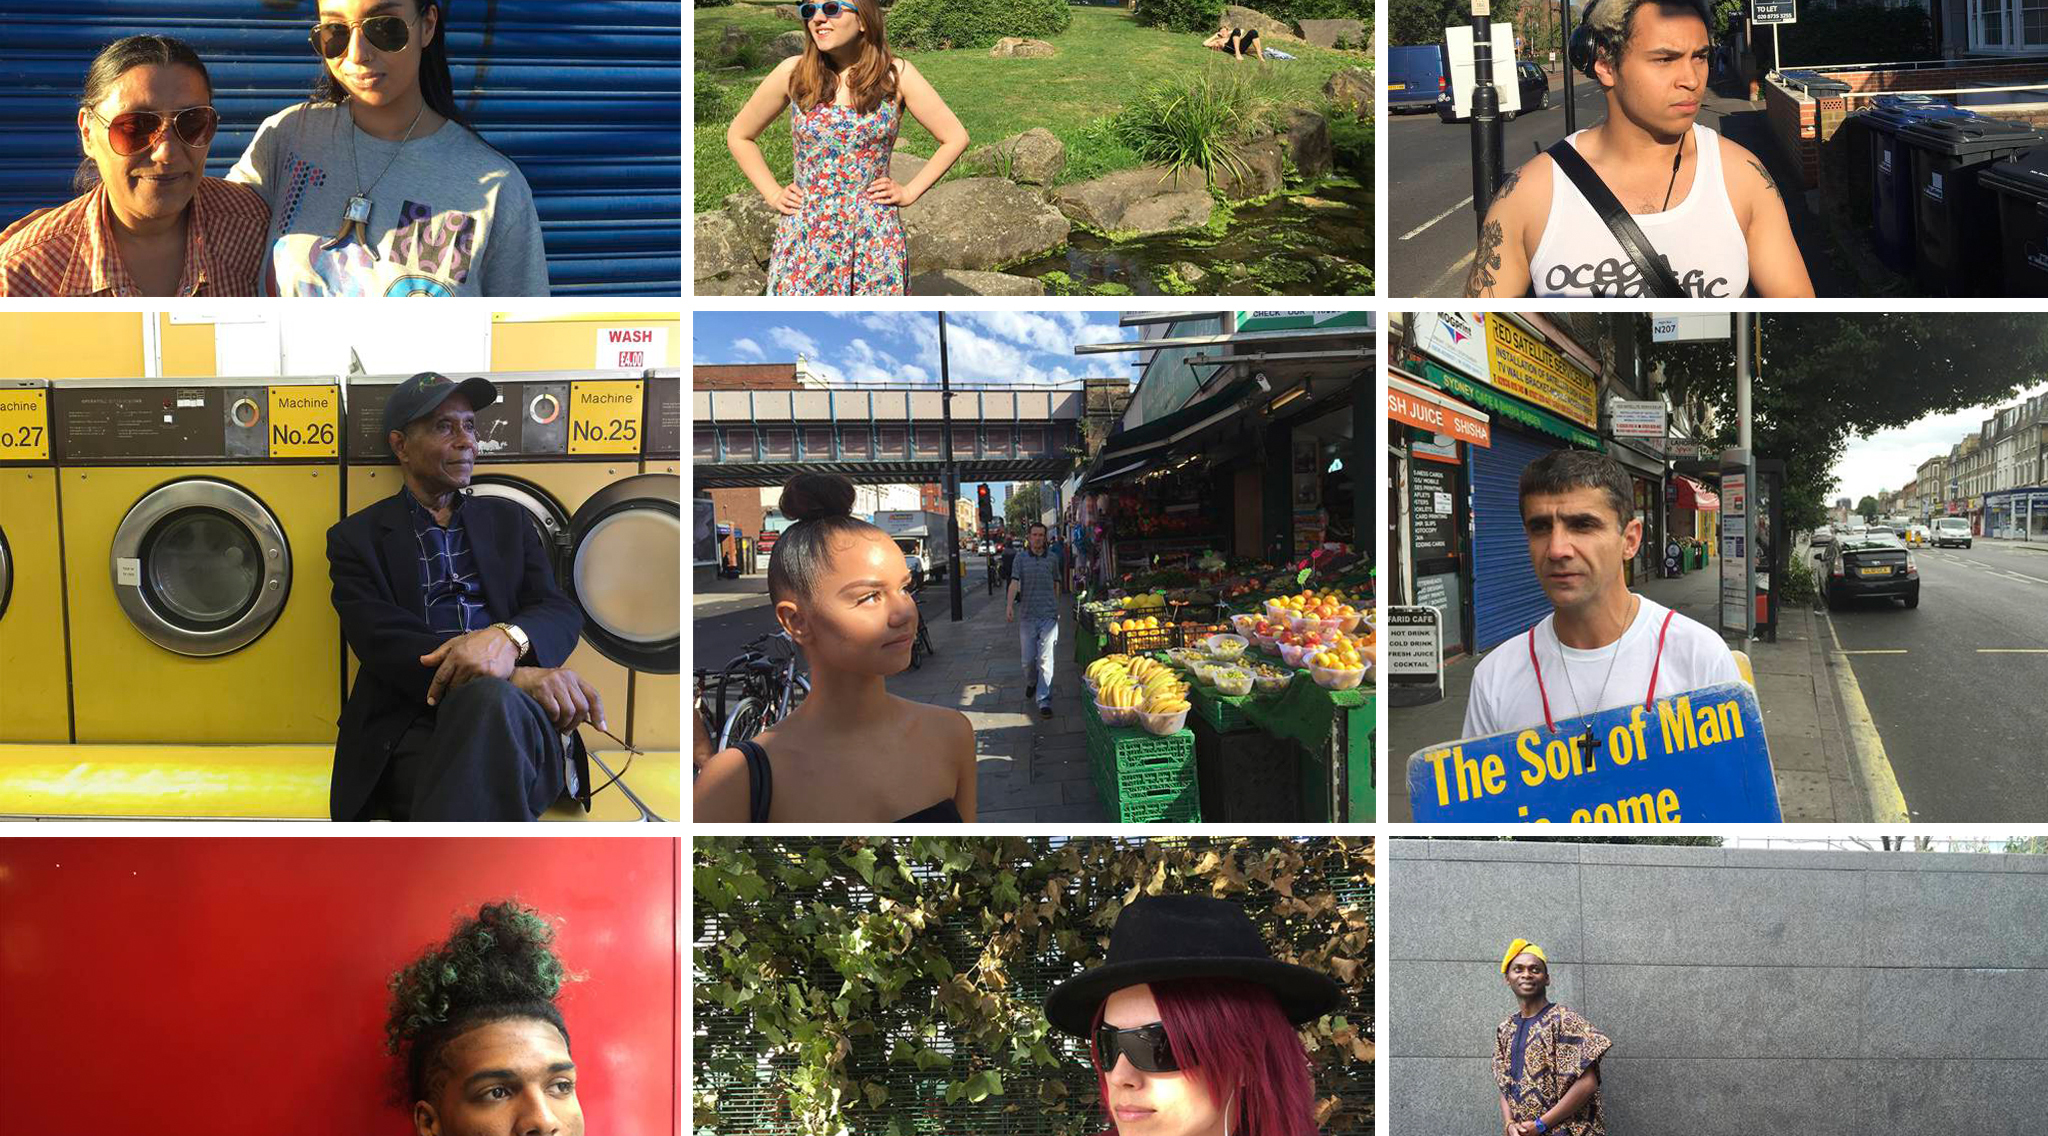 'This Place We Know': a celebration of Europe's most diverse street